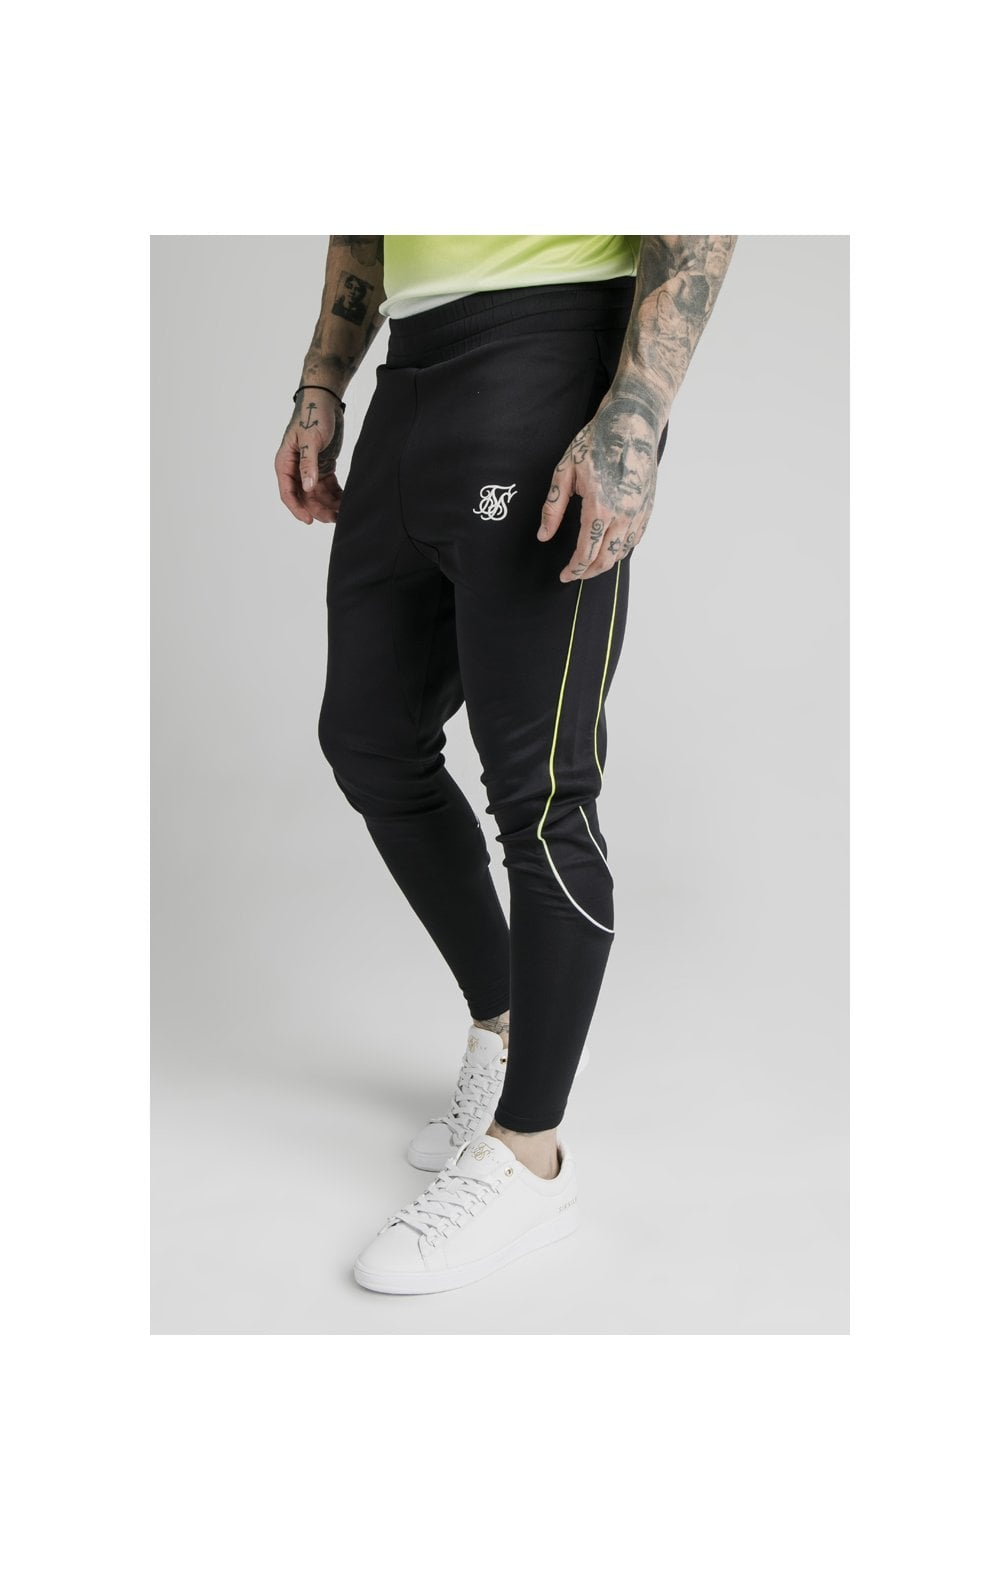 Load image into Gallery viewer, SikSilk Tri Fade Tape Track Pants - Black, Fluro & White